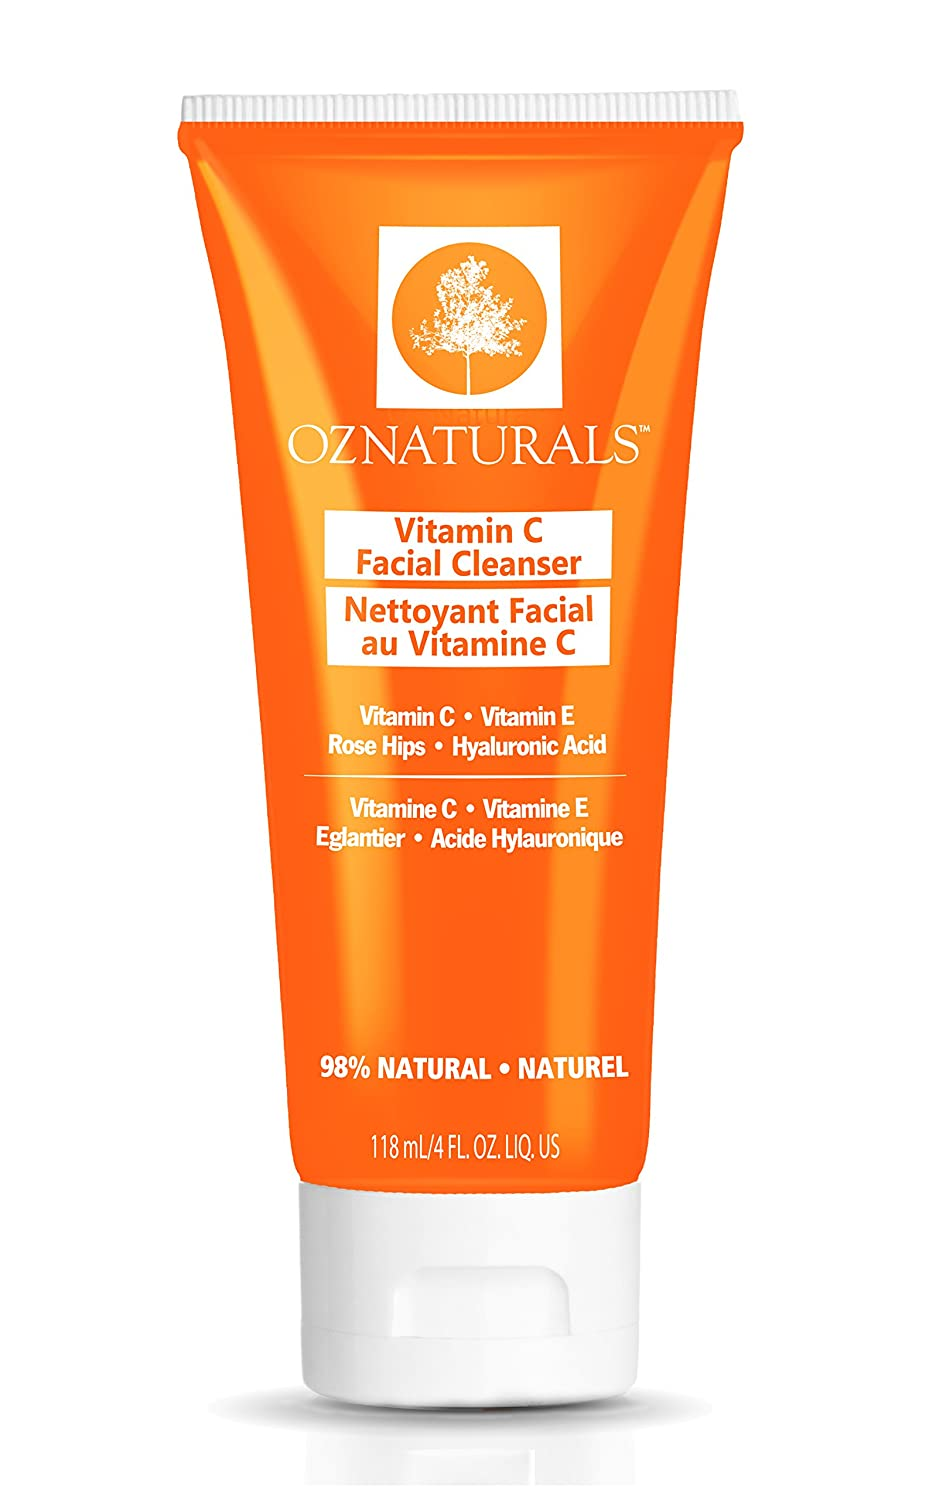 OZNaturals Vitamin C Facial Cleanser – This Natural Face Wash Is The Most Effective Anti Aging Cleanser Available - Deep Cleans Your Pores Naturally For A Healthy, Radiant Glow.